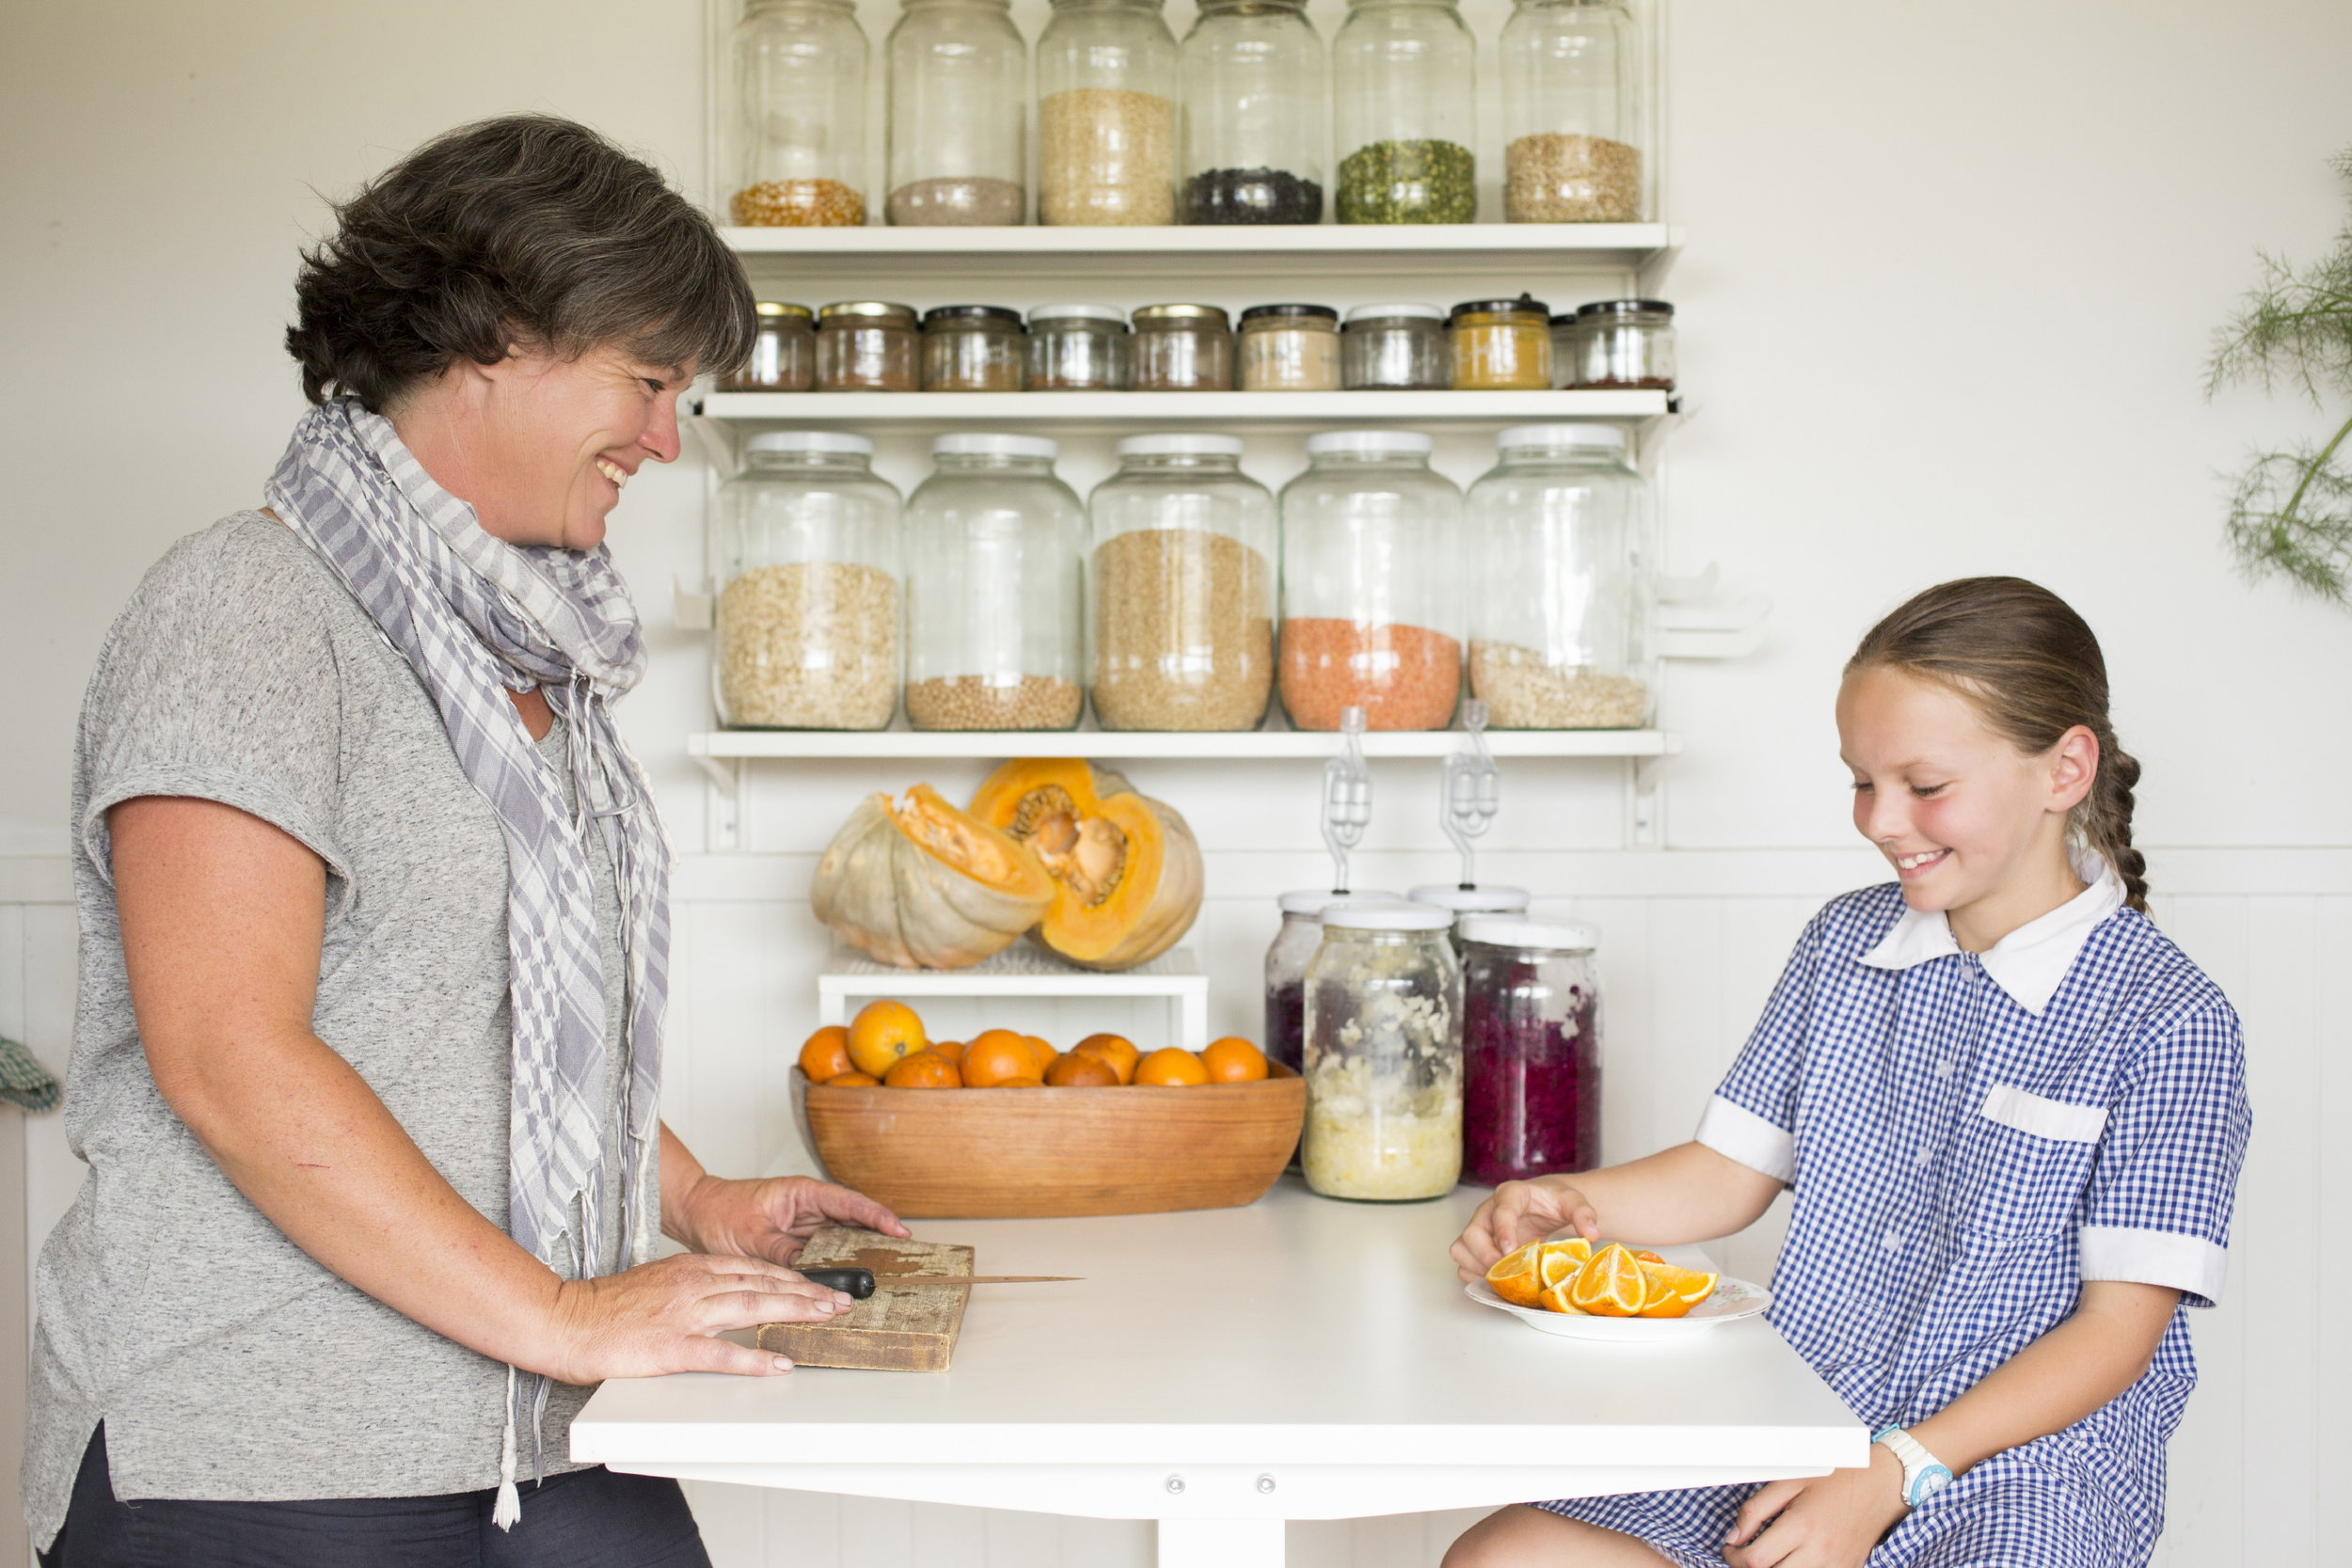 Tricia and nine year old Olivia enjoy an afternoon snack in the kitchen of their tiny home.